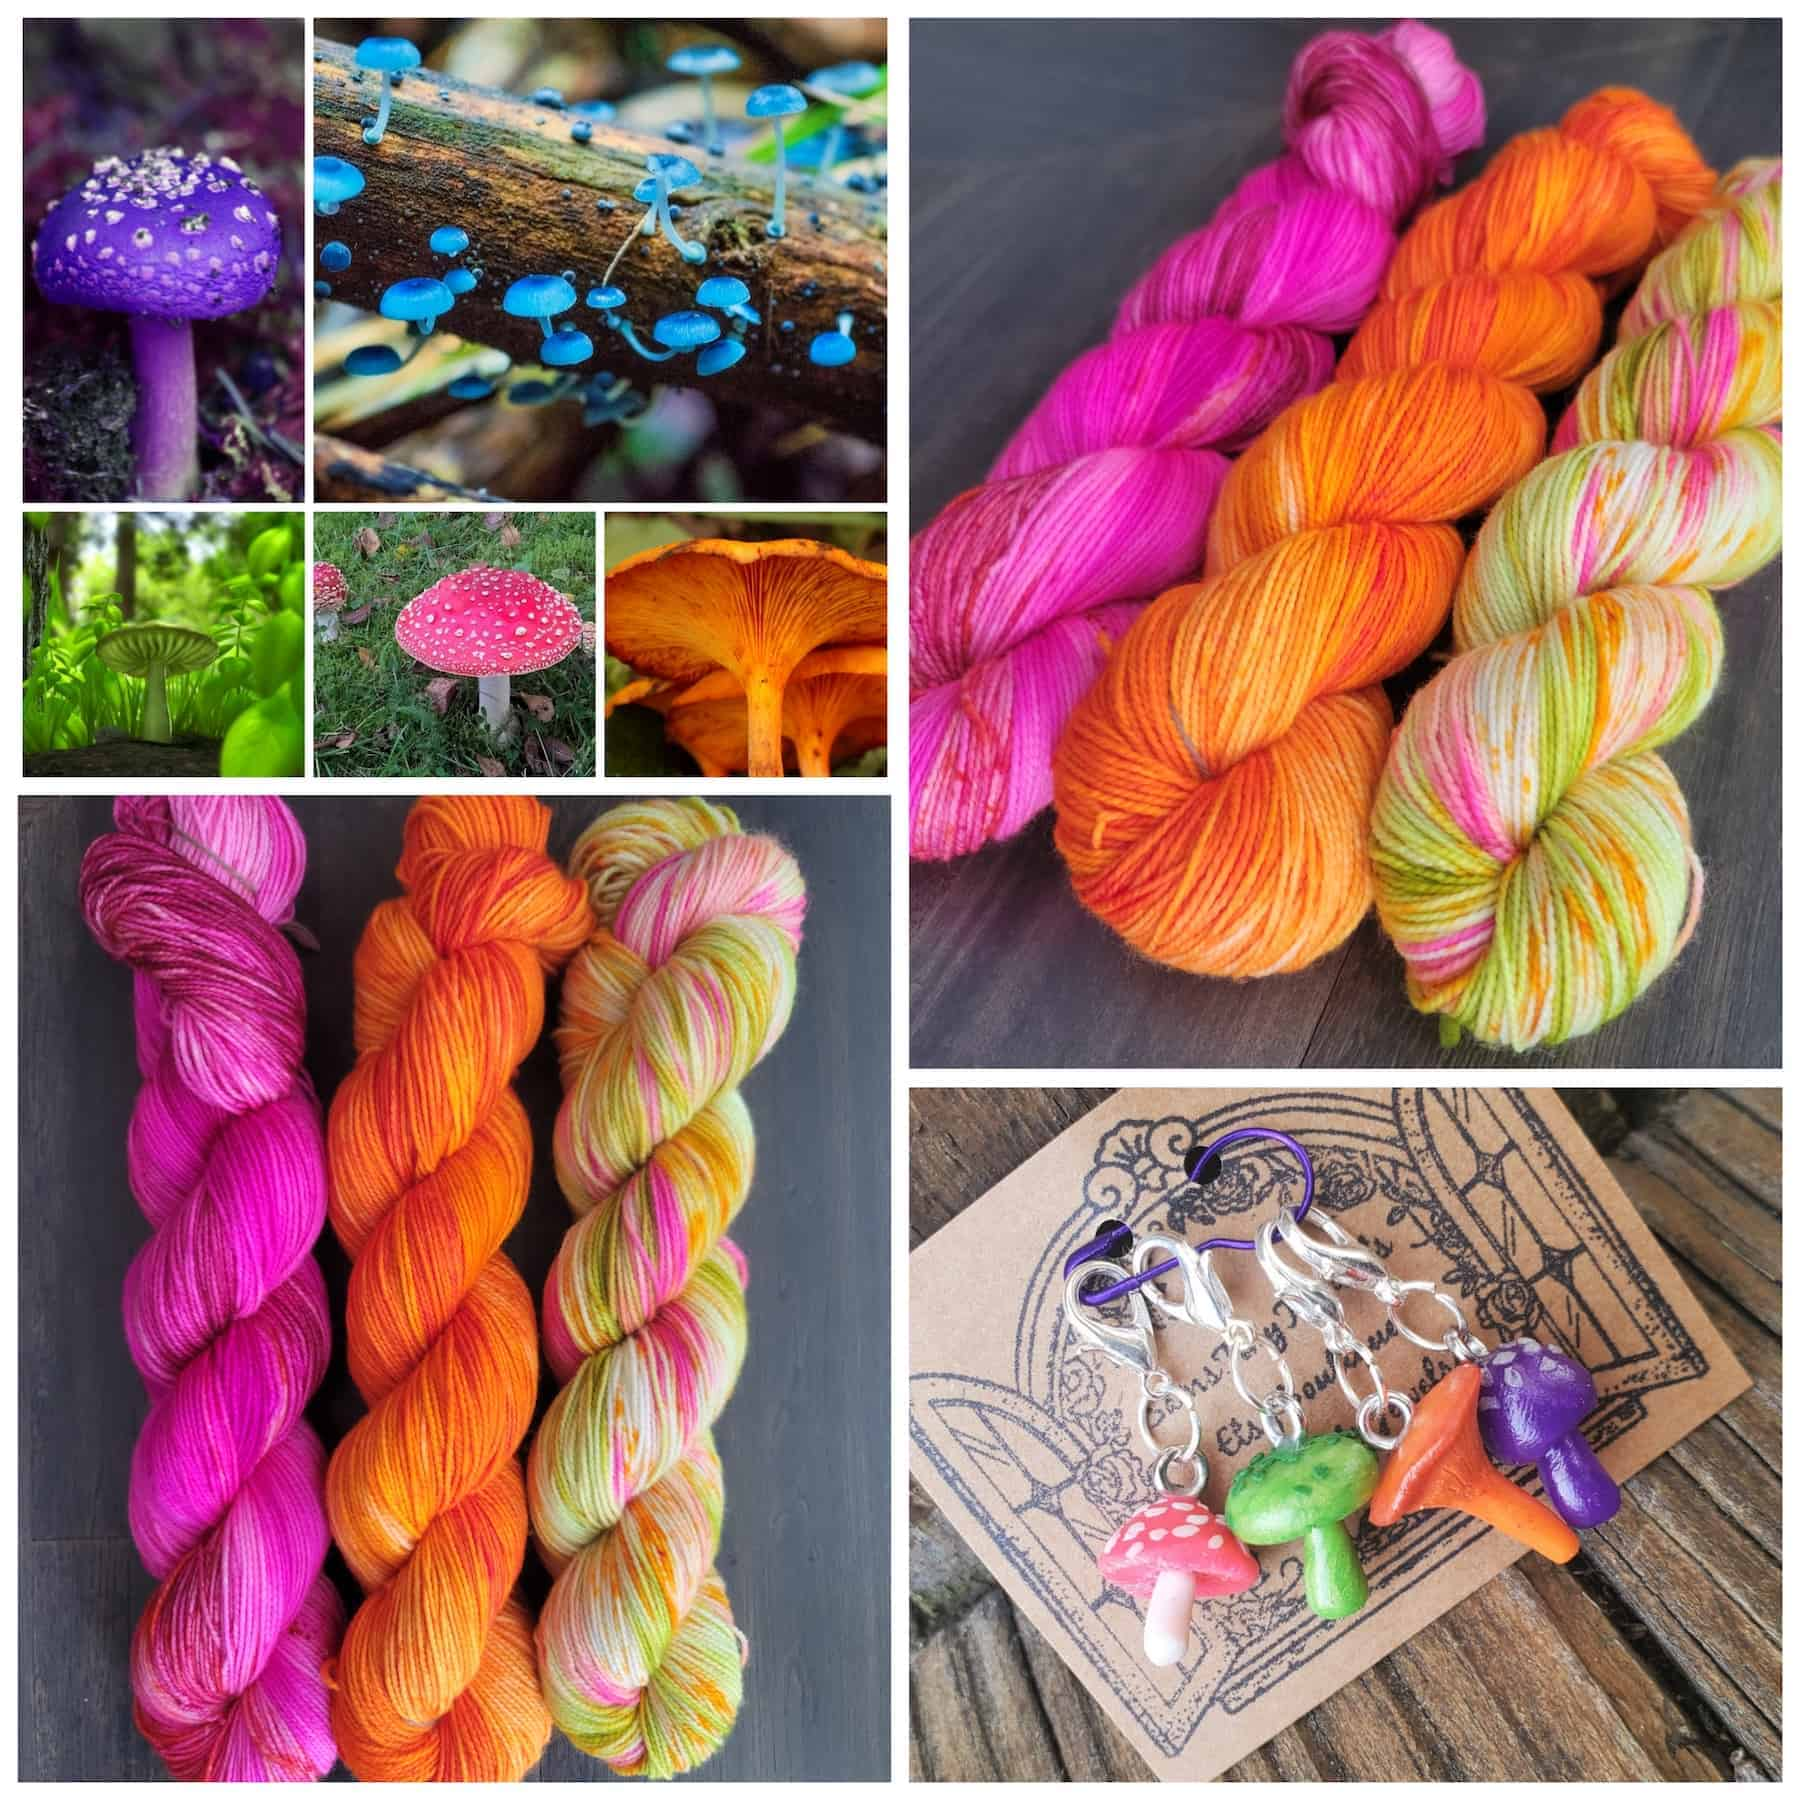 A collage of fluorescent pink and orange yarn and mushrooms.